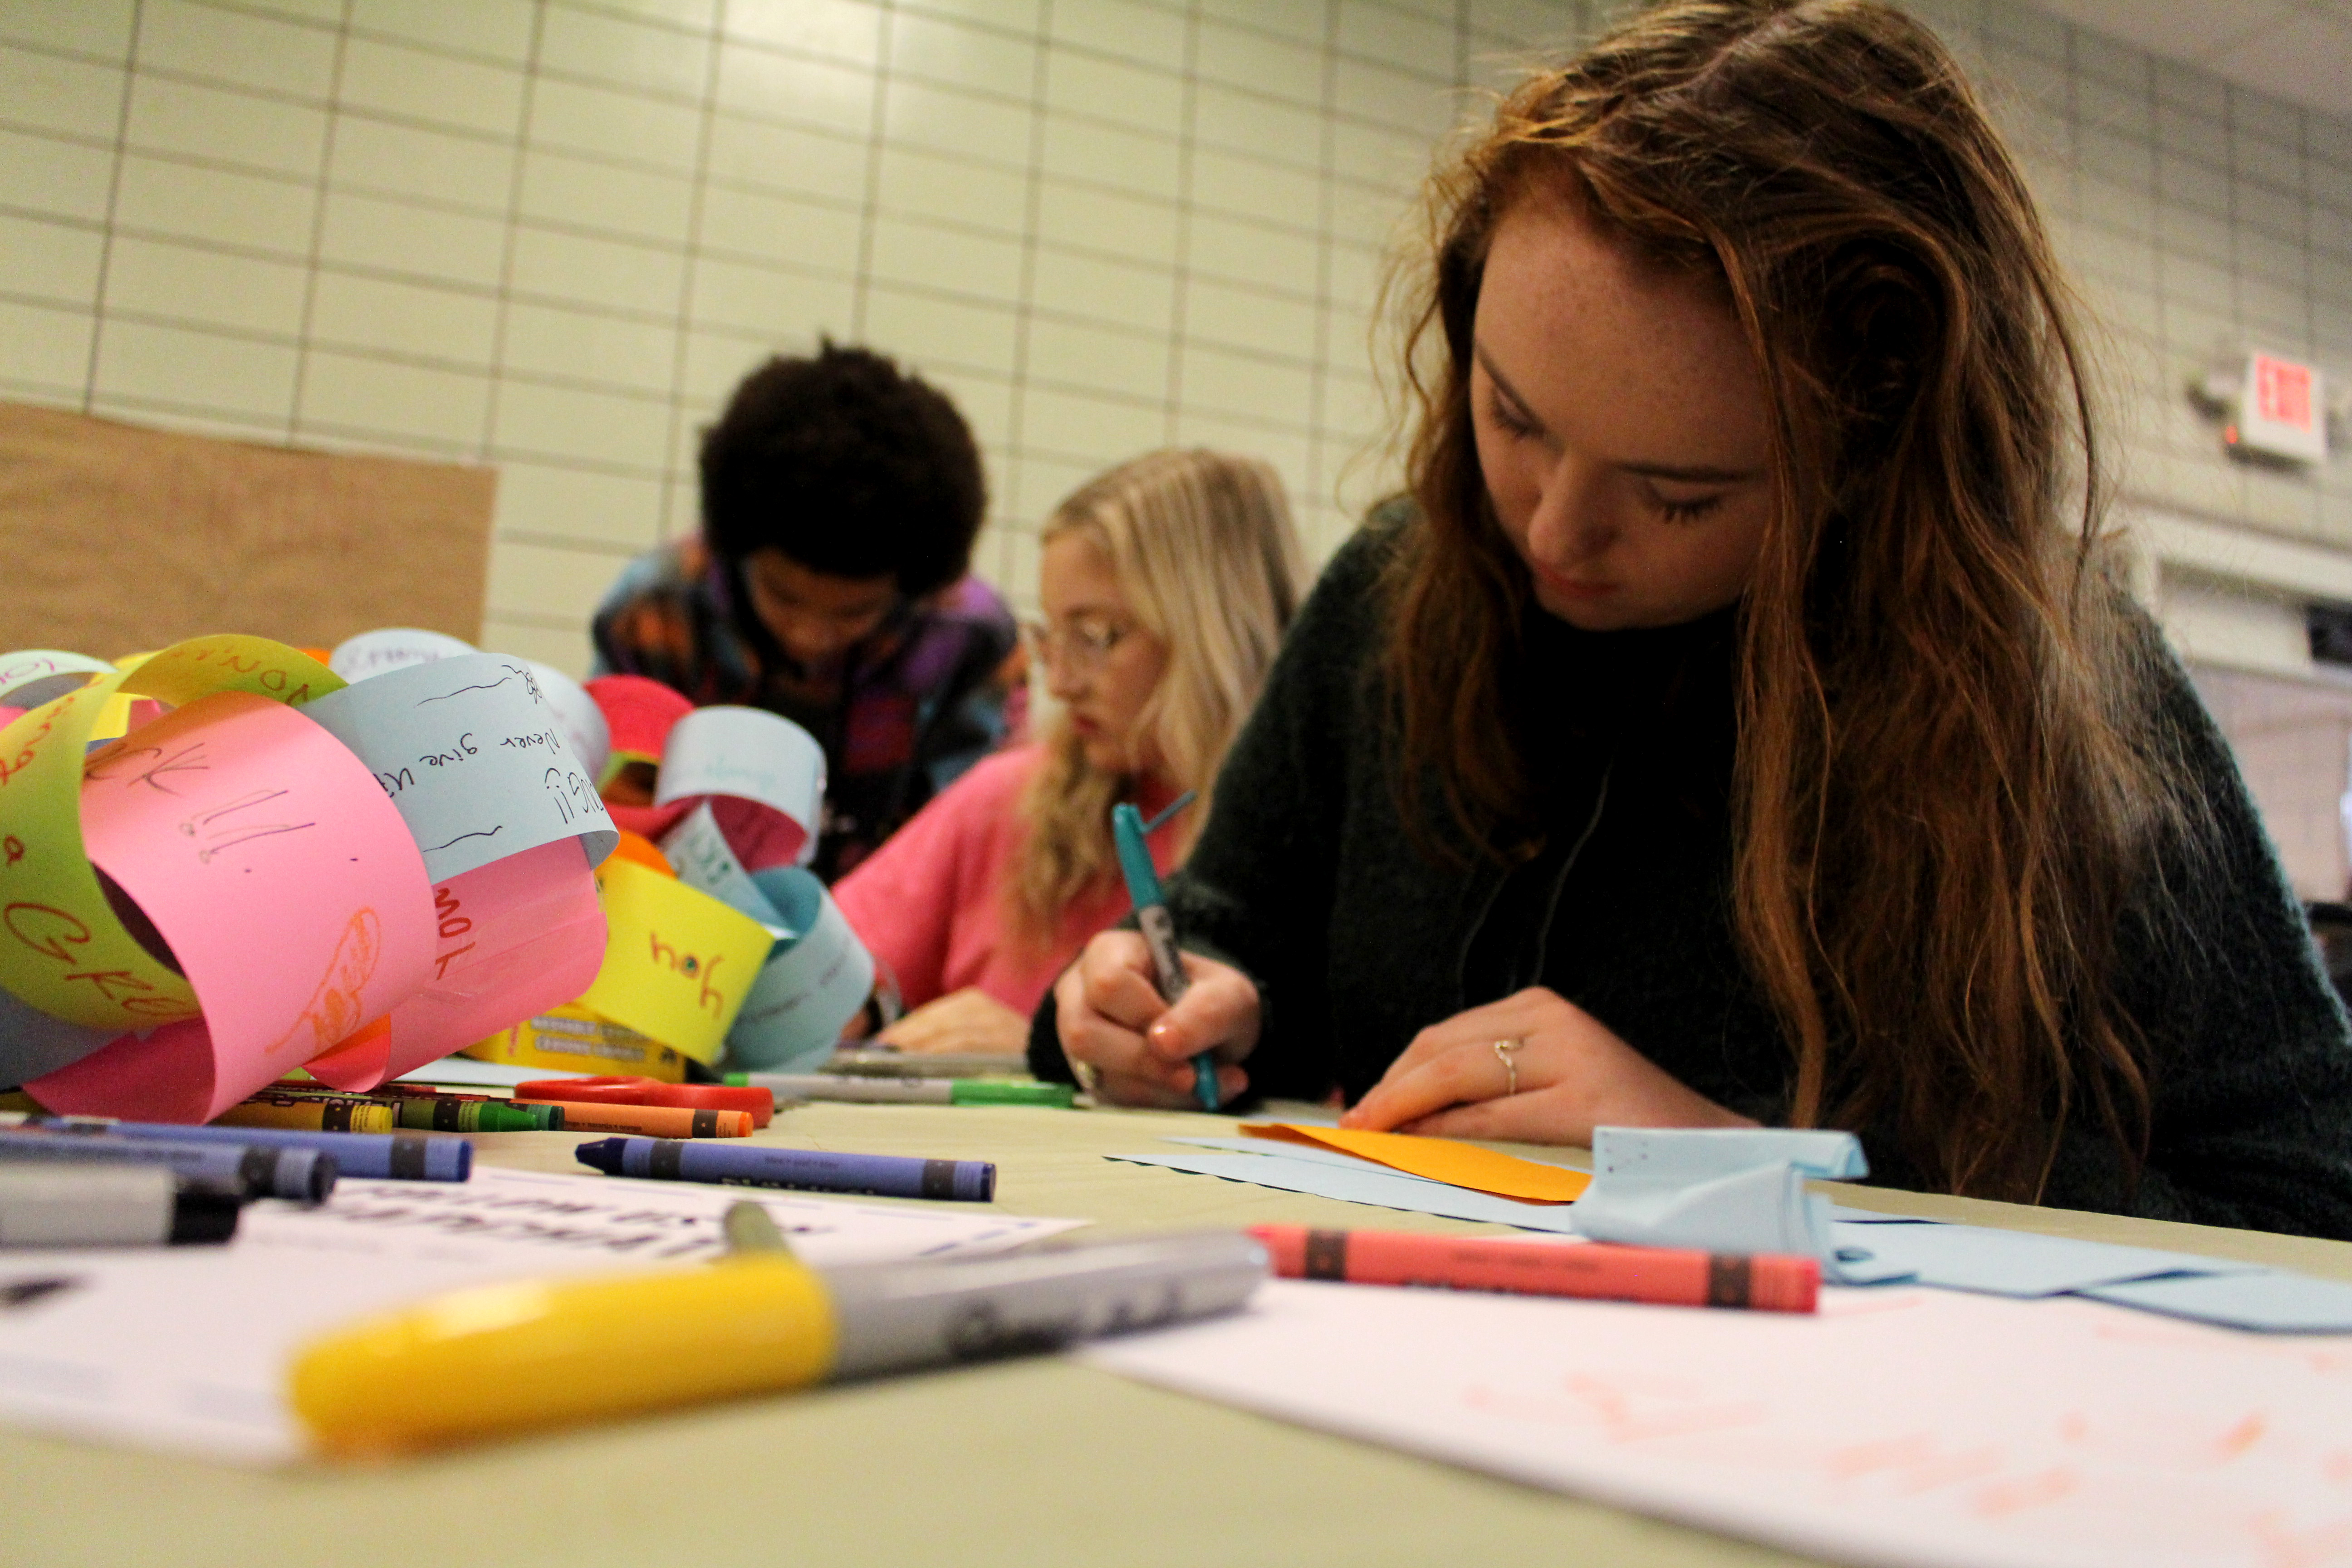 4-H'ers participate in service projects to help those in need in local communities.